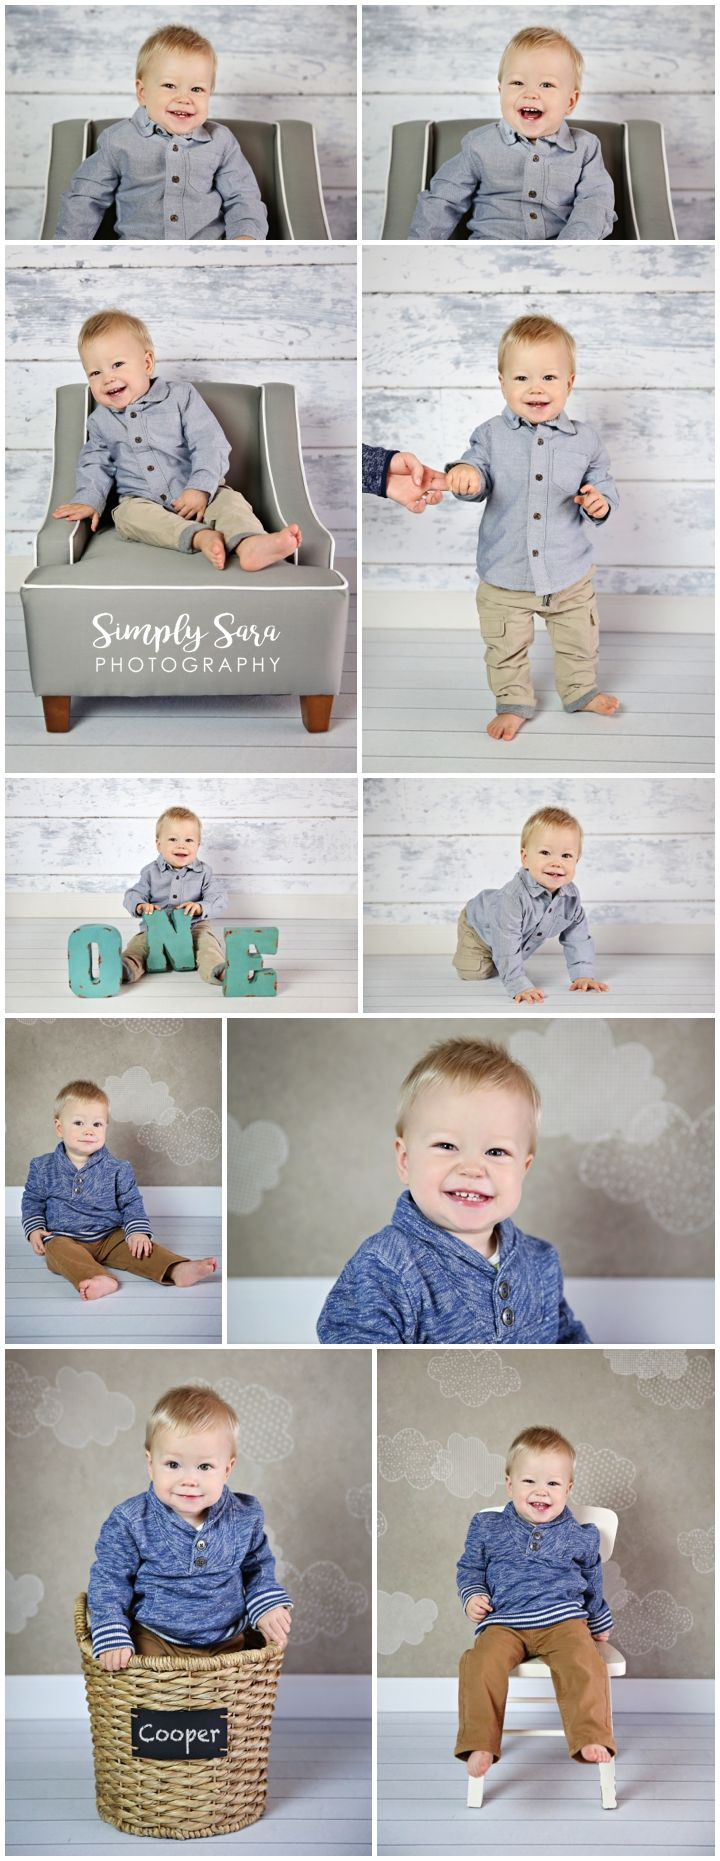 1 year old boy photo shoot ideas poses indoor session faux wood backdrop gray chair billings mt child portrait photographer